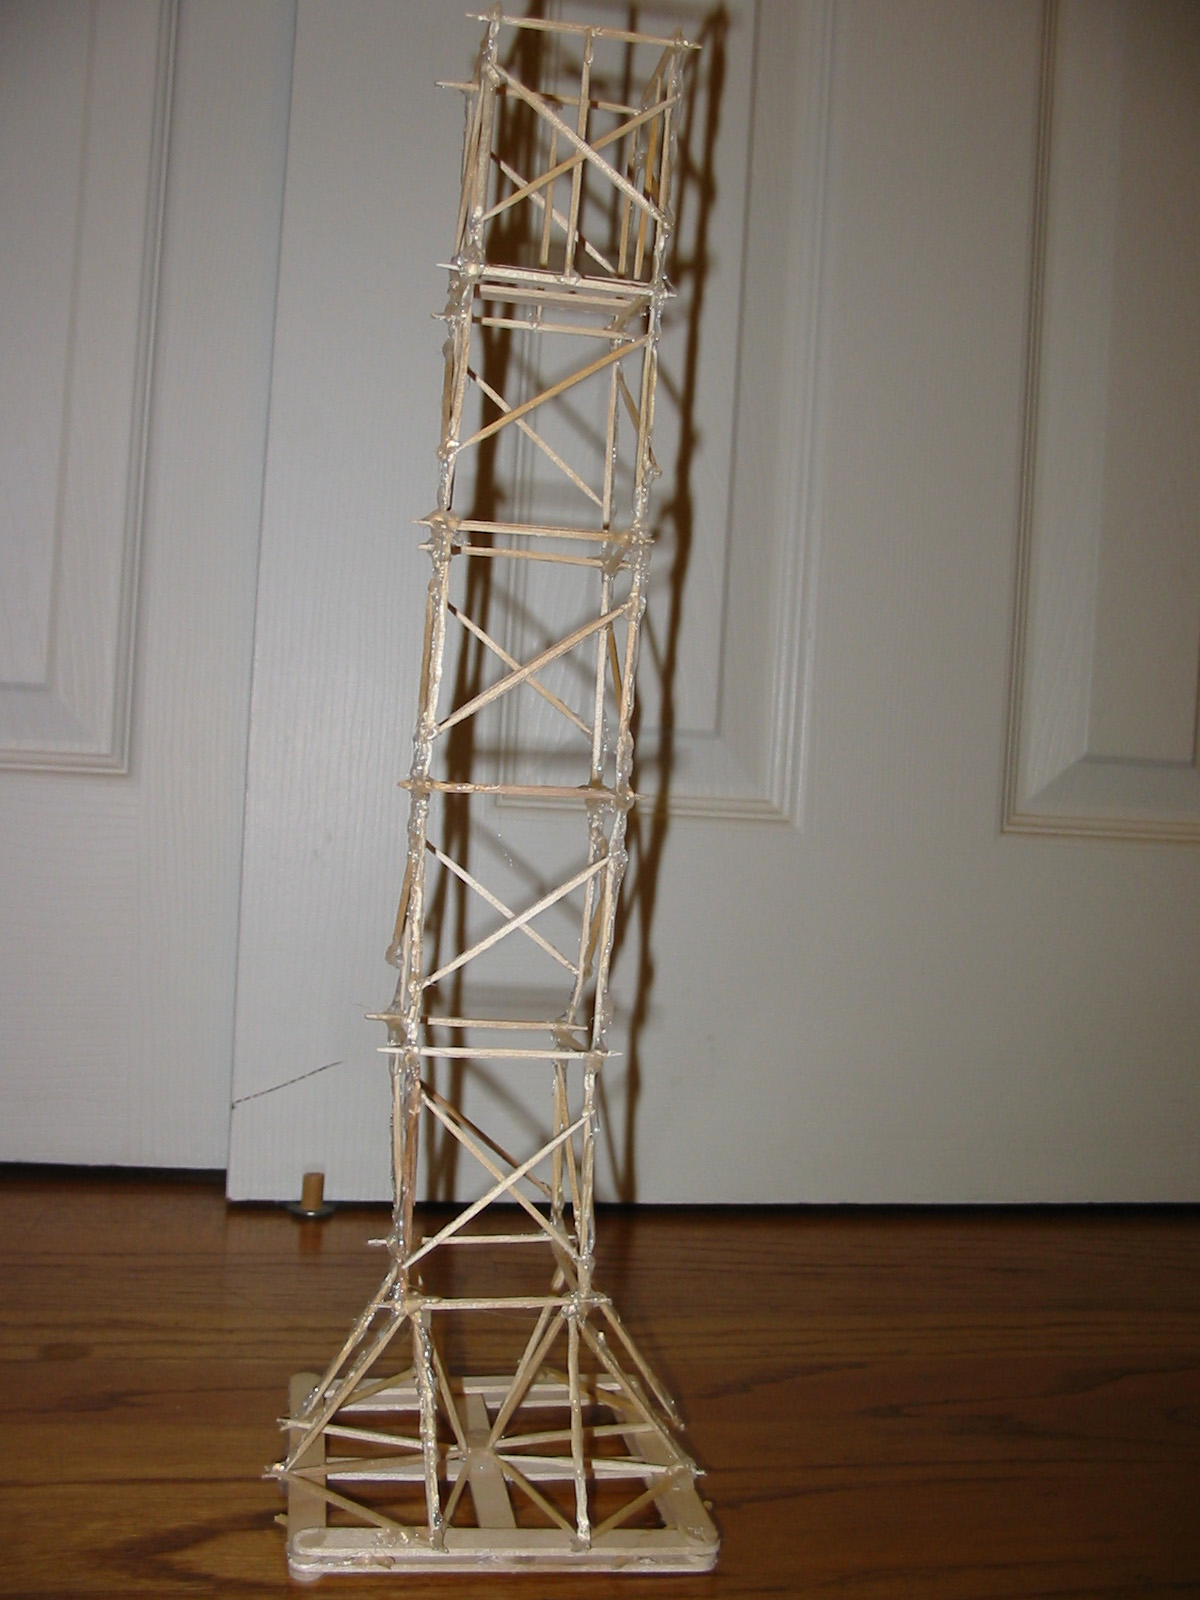 Earthquake Tower Toothpick Project